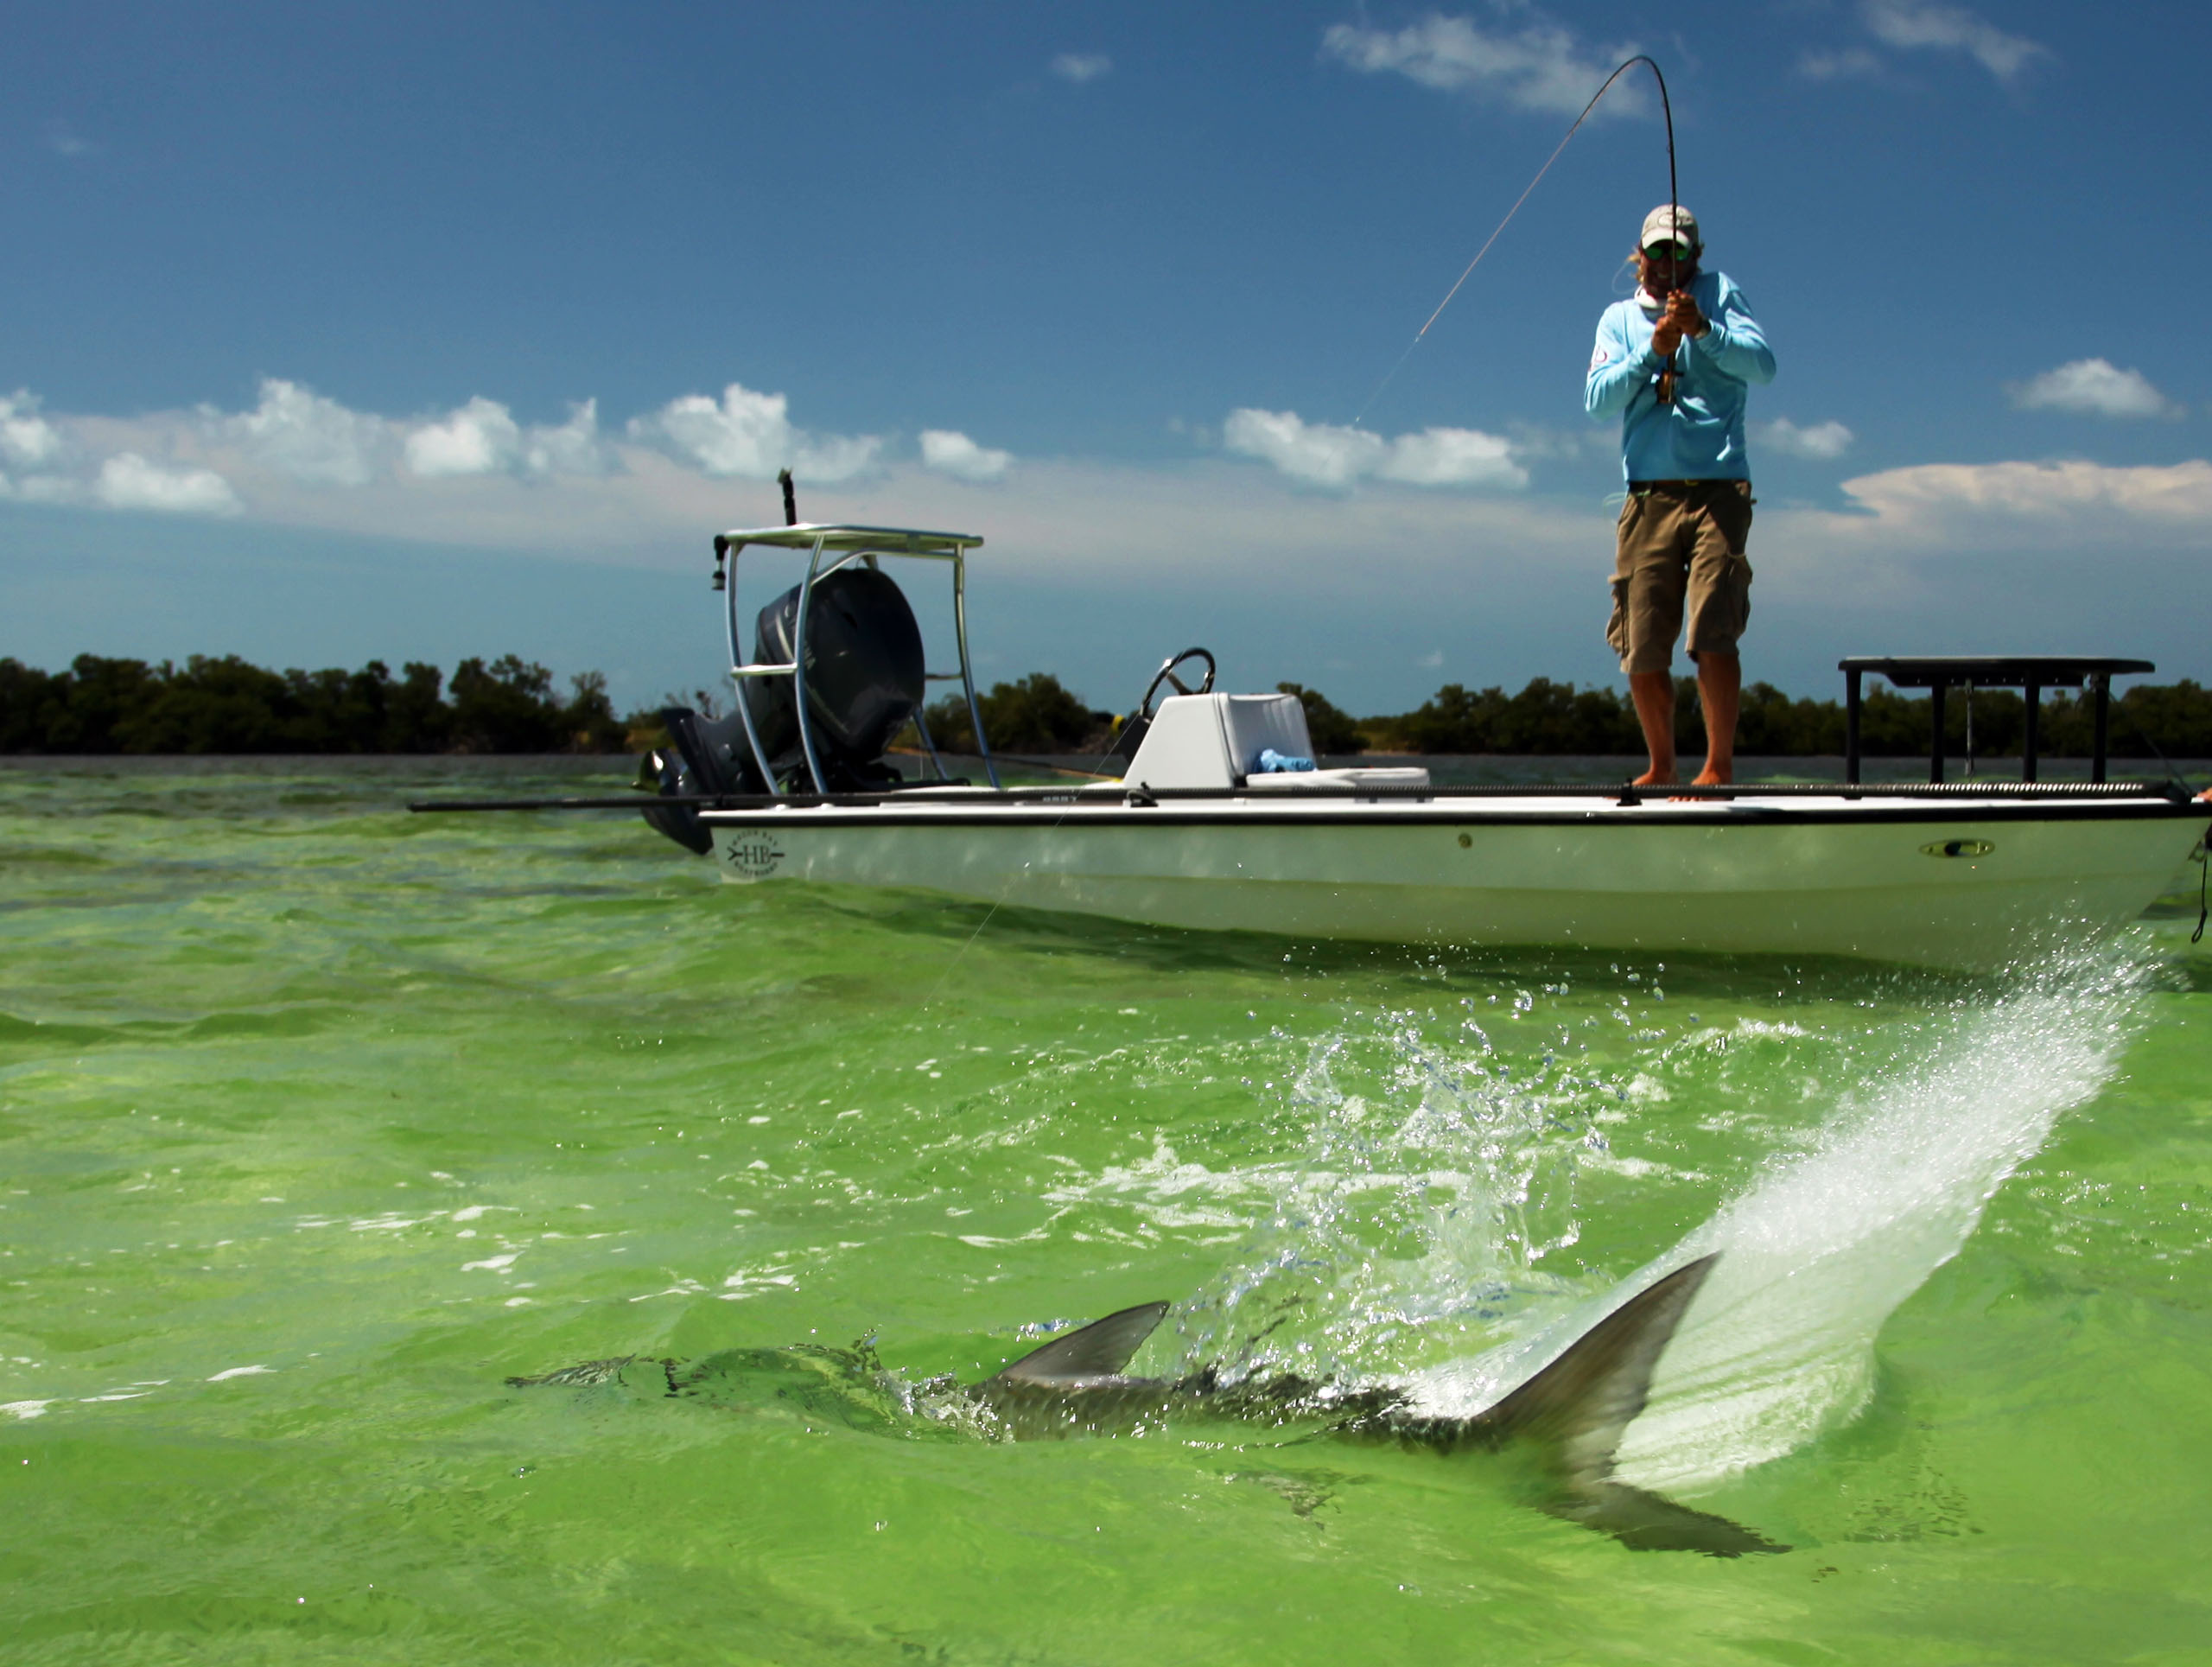 Tail exploding in the water with Jeff legutki fighting from the flats skiff.